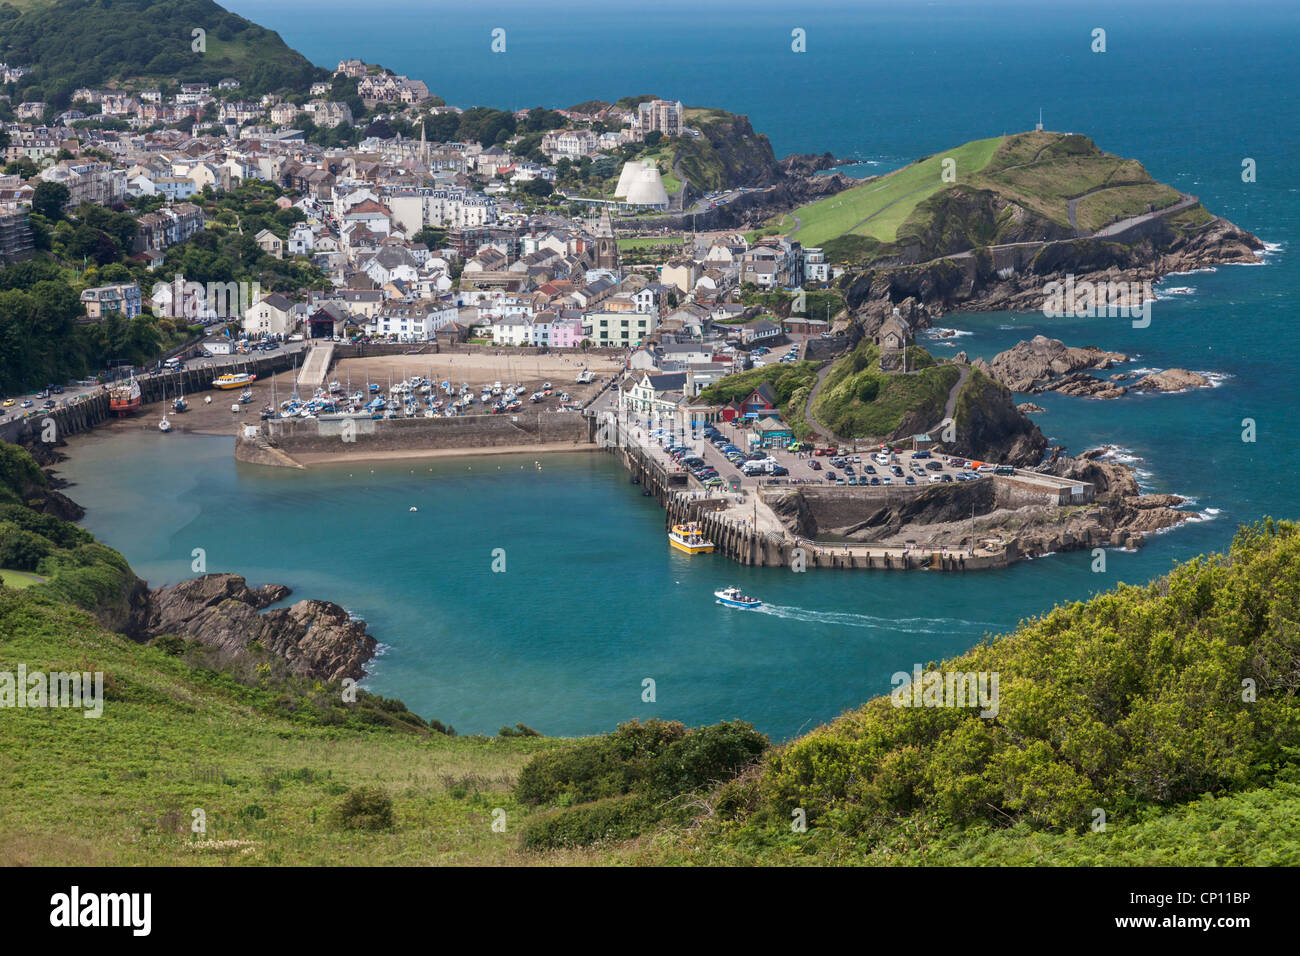 Iifracombe Harbour in North Devon captured from the South West Coast Path - Stock Image